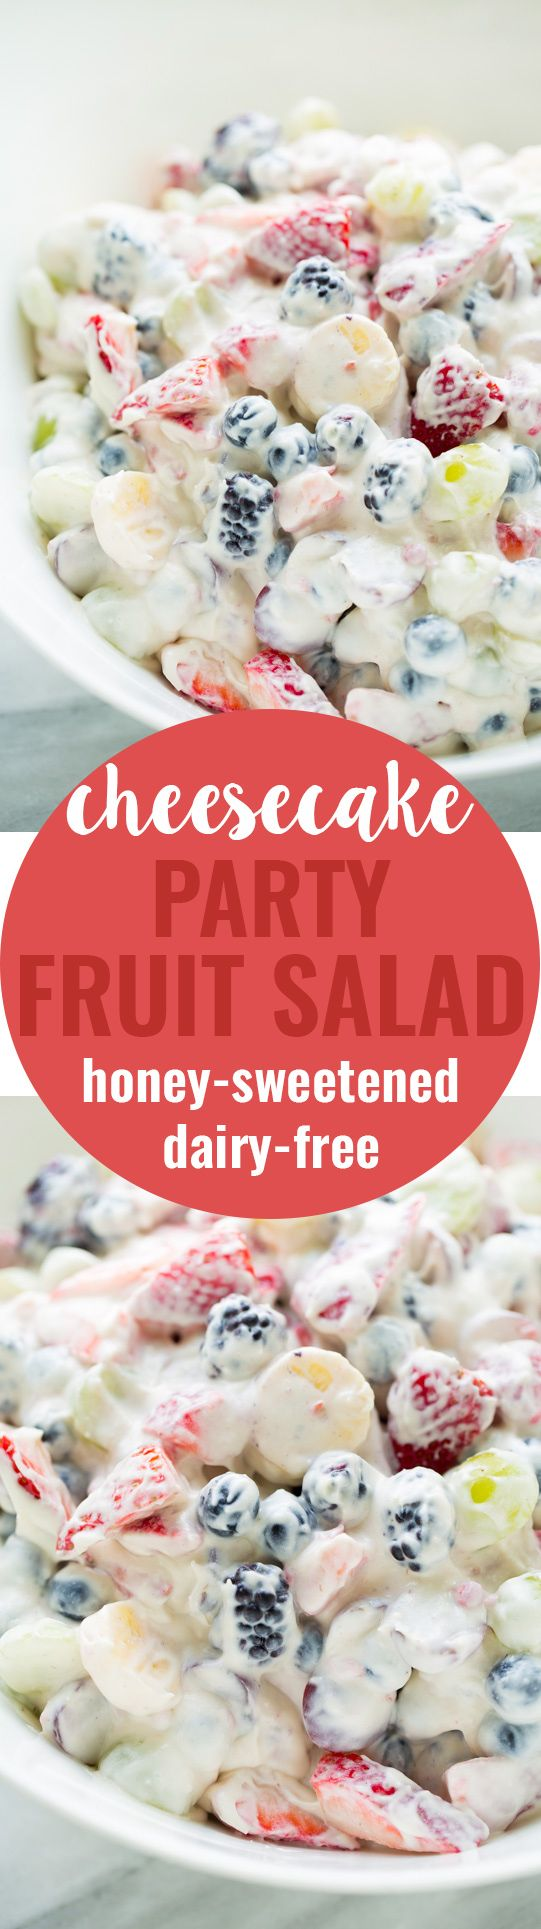 Healthy Cheesecake Fruit Salad! Perfect for parties and potlucks. Dairy-free and honey-sweetened!